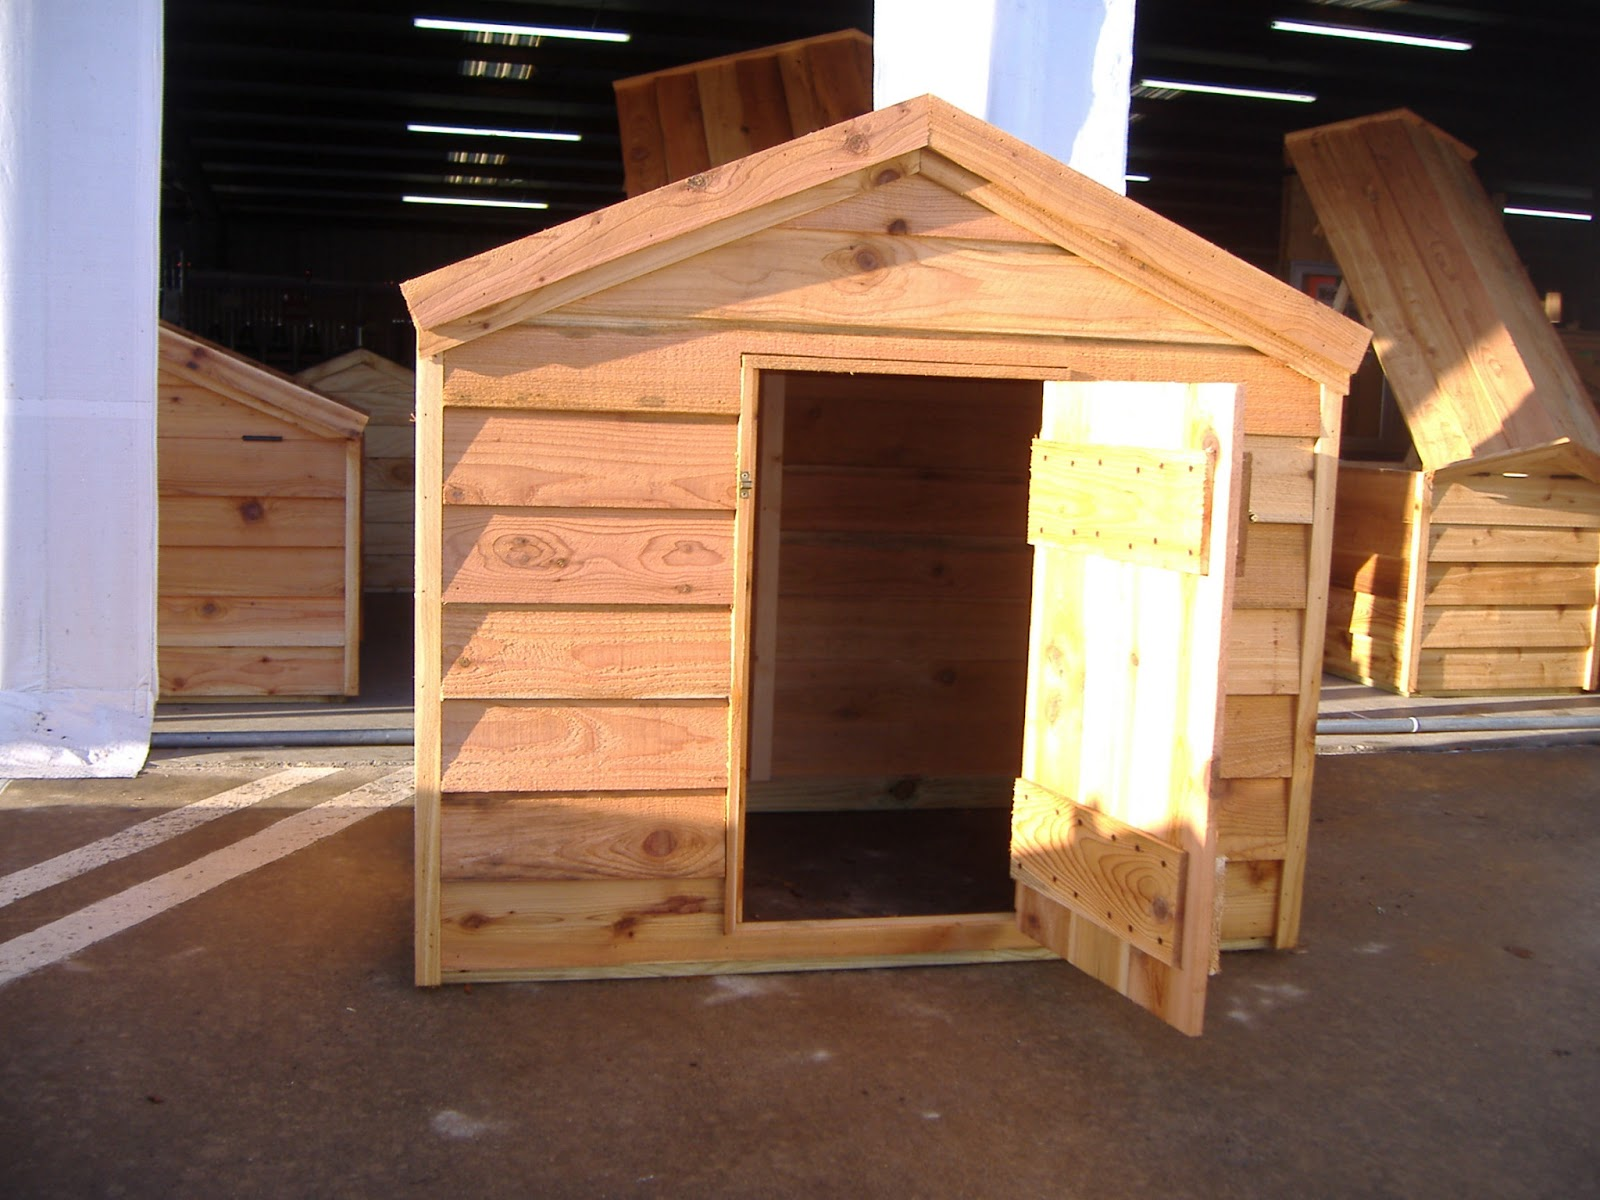 To Build An Insulated Dog House How To Build An Insulated